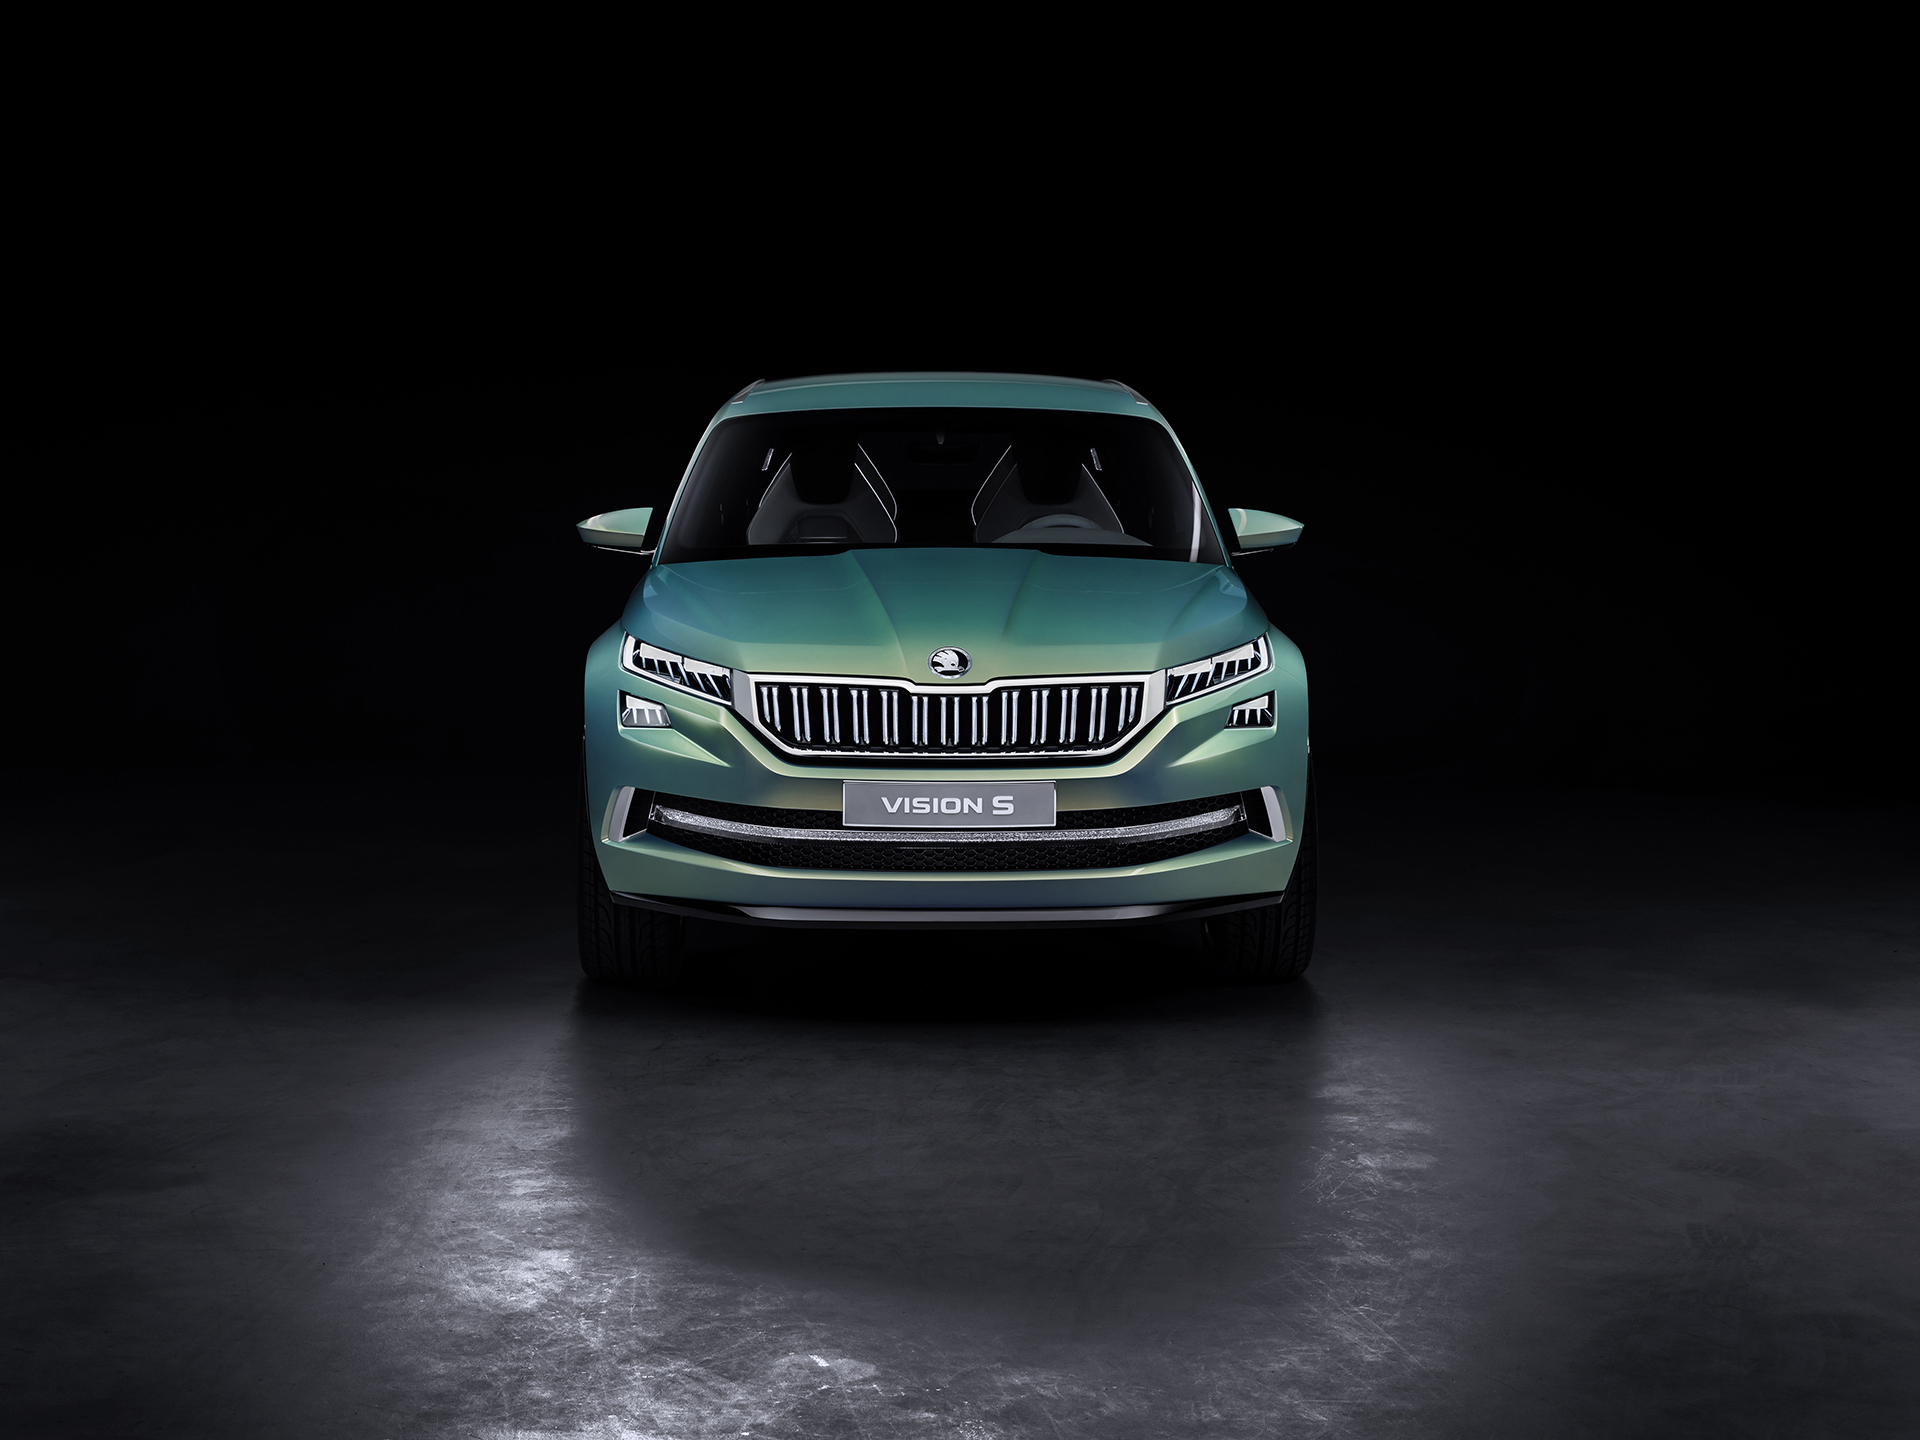 Skoda VisionS Concept - 2016 - front-face / face avant